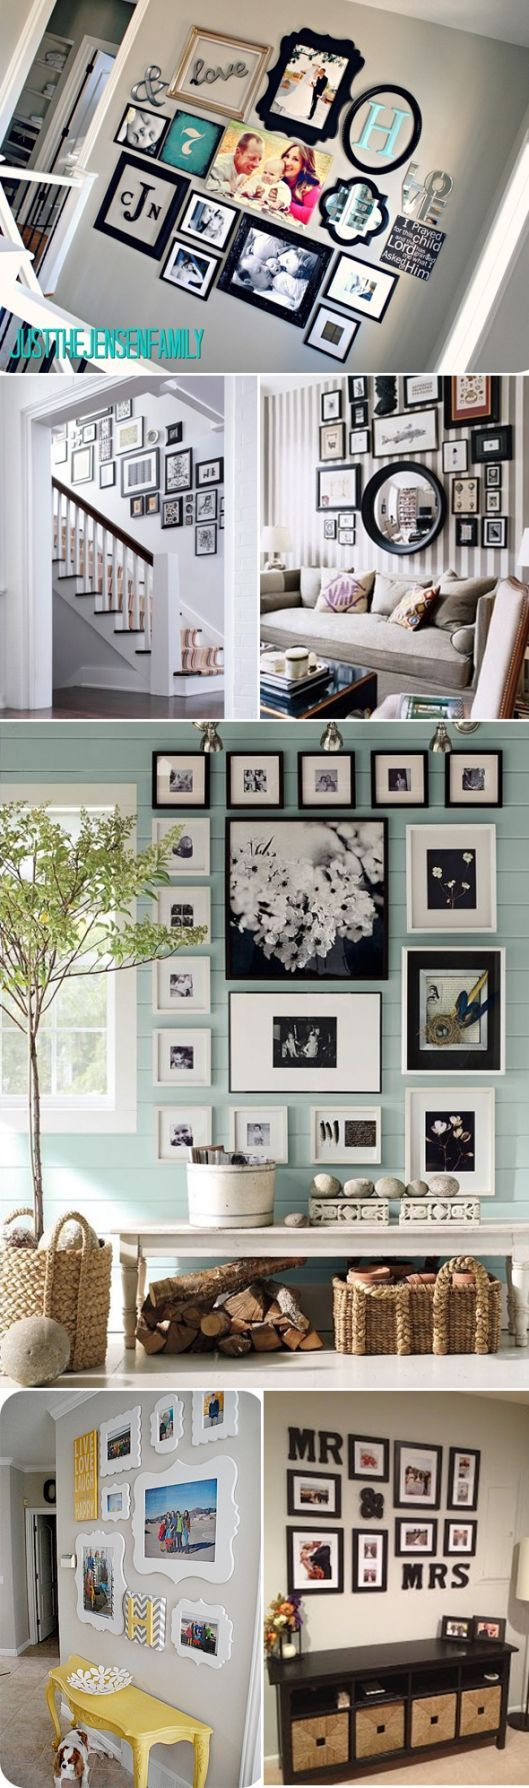 gallery walls, great layouts - sublime decor